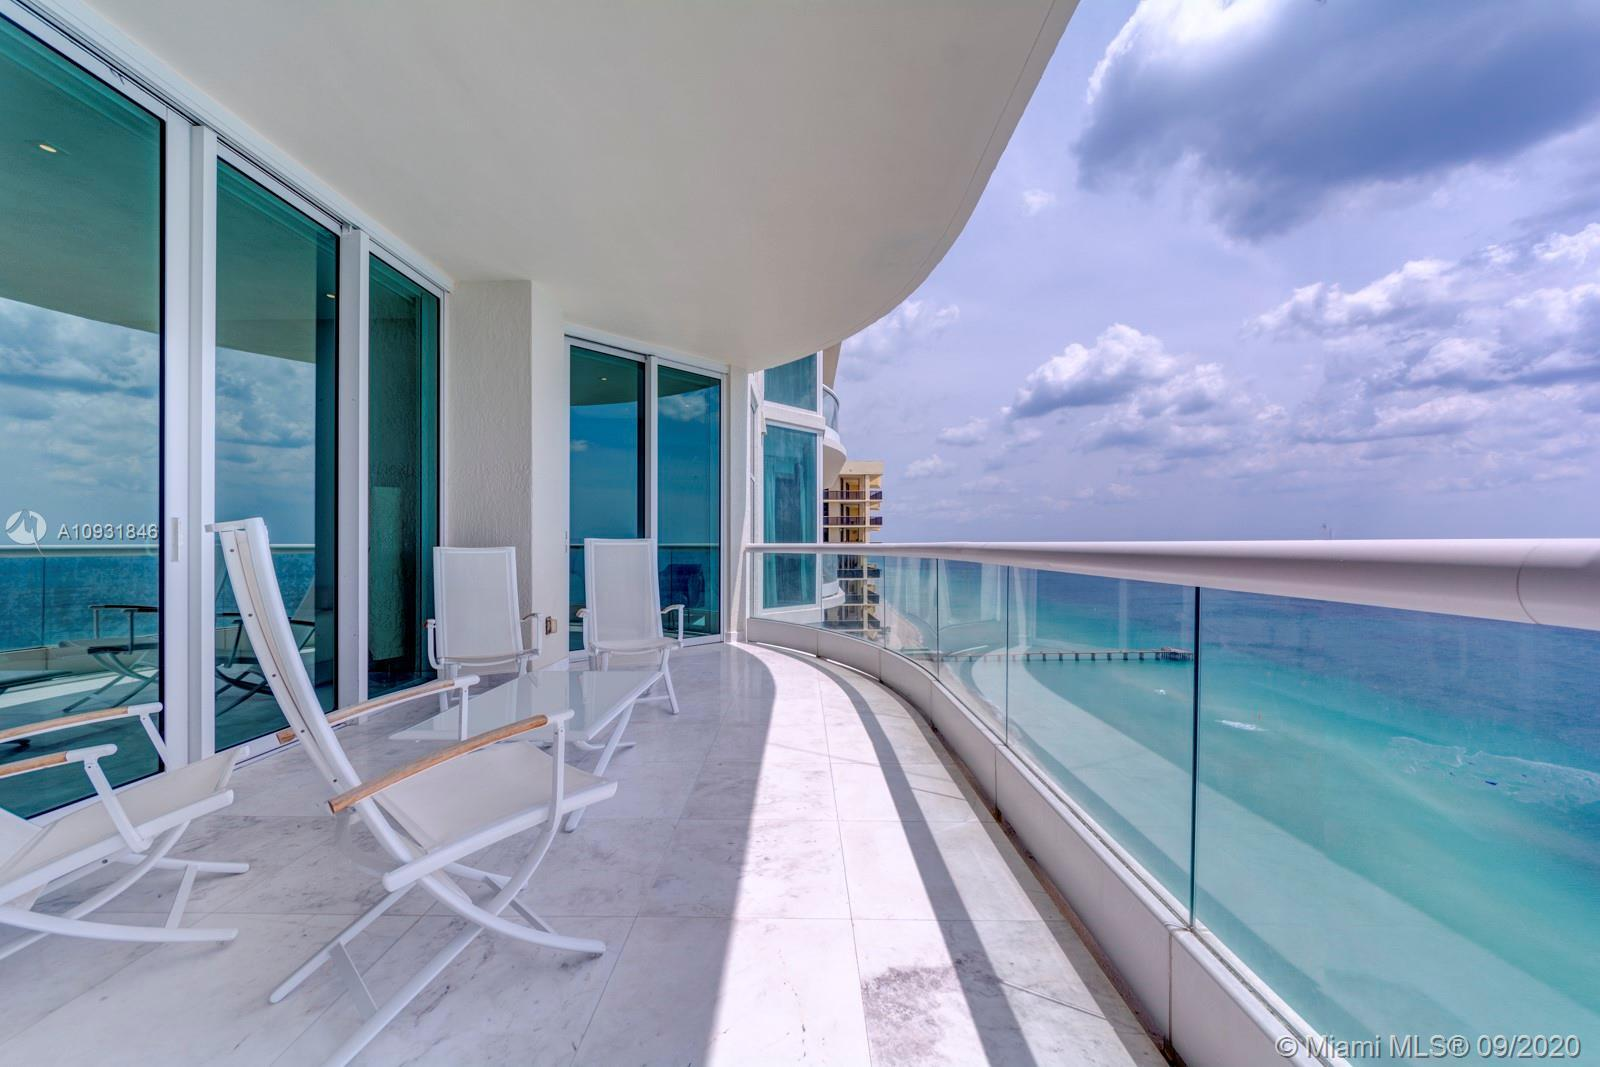 Beautiful apartment 2 bedroom/2.5 bath. Impecable remodeled with Ocean view. Resort amenities.